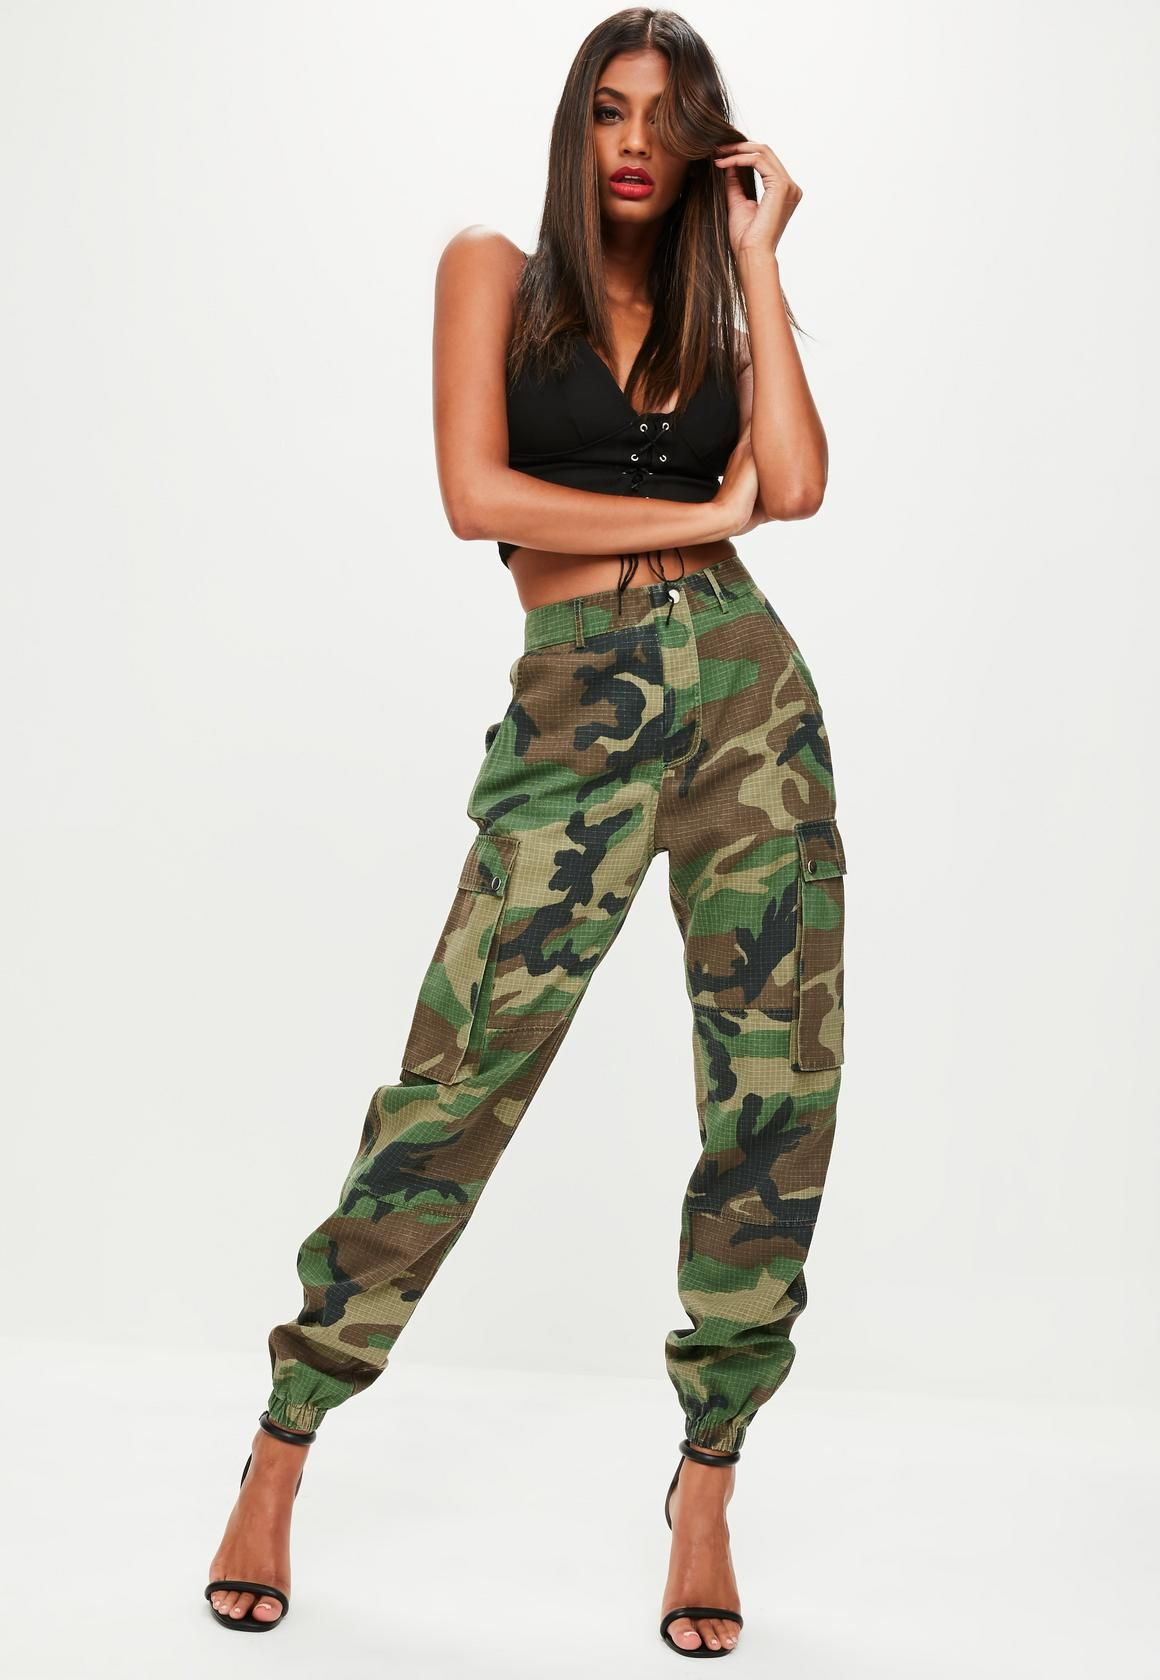 66e89bdc73690e Khaki camo pants featuring two side pockets with button fastening,  elasticated cuff, two back pockets and belt loops.